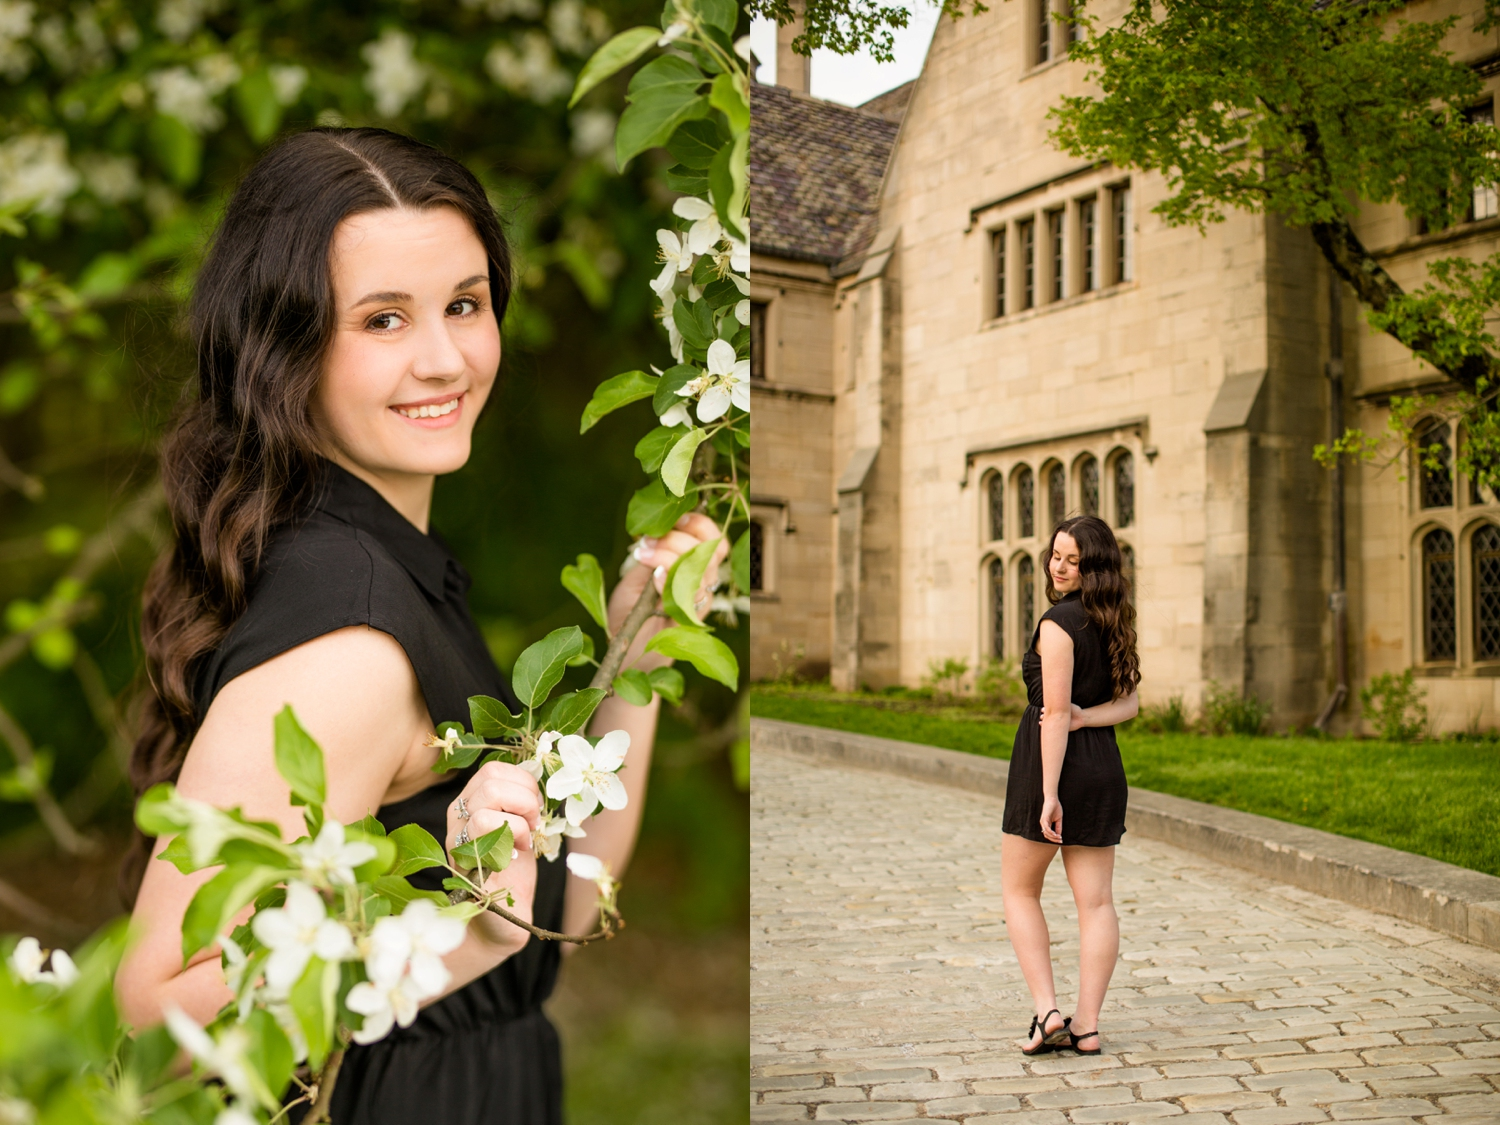 pittsburgh senior photos, pittsburgh senior photographer, location for photoshoot pittsburgh, hartwood acres mansion senior photos